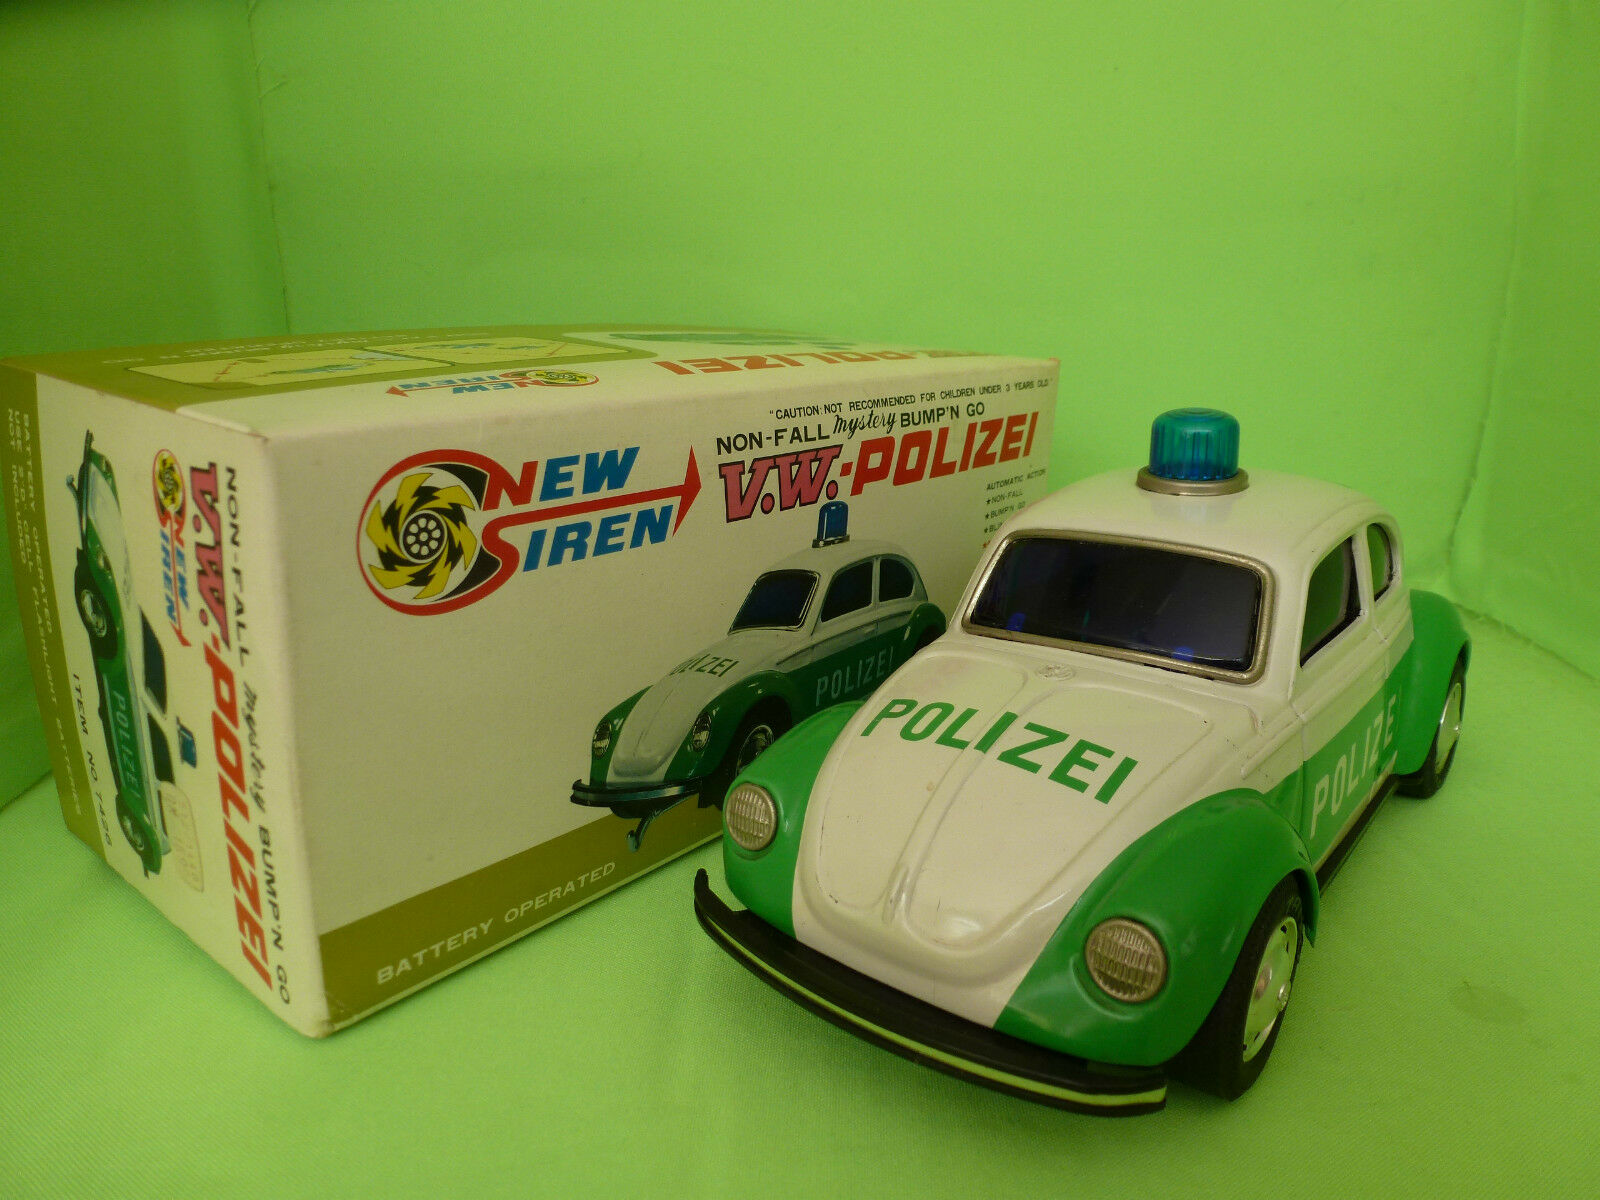 TAIYO   VW VOLKSWAGEN - POLIZEI - IN BOX - 7426    RARE SELTEN IN GOOD CONDITION